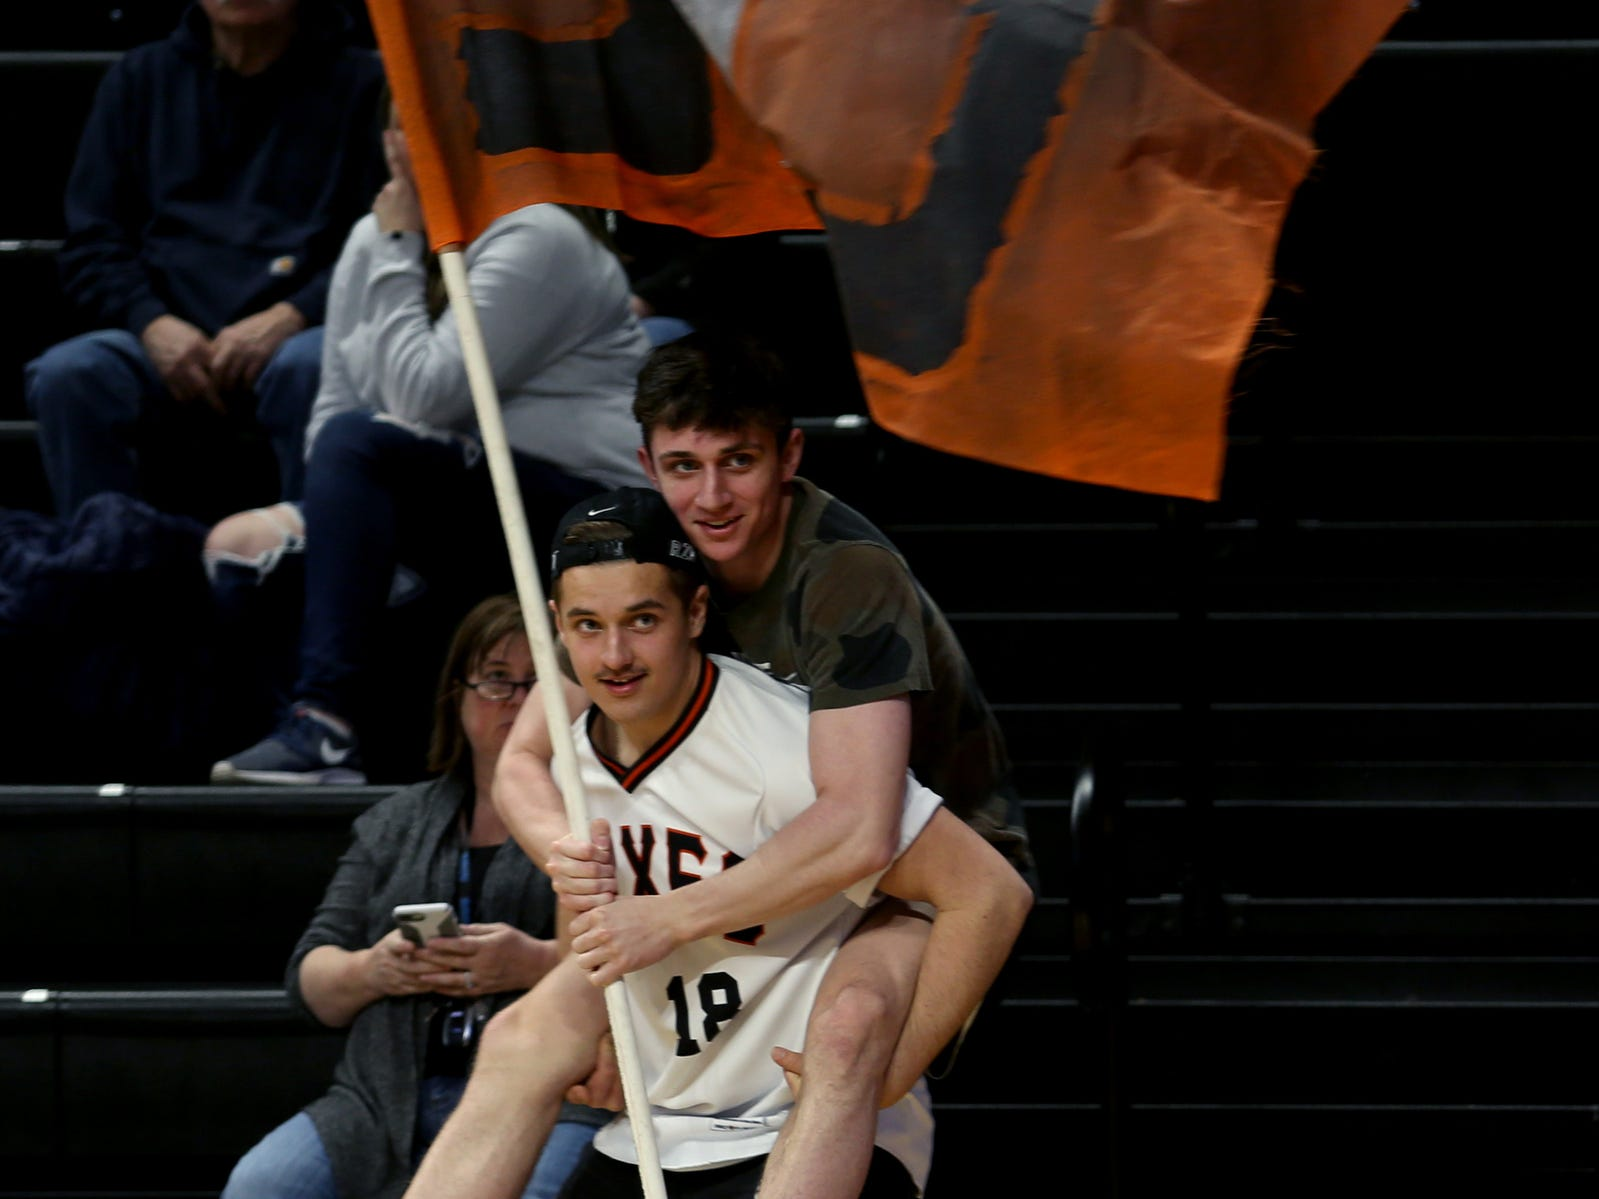 Silverton fans celebrate a basket in the second half of the La Salle Prep vs. Silverton girls basketball game in the OSAA Class 5A quarterfinals at Oregon State University in Corvallis on Thursday, March 7, 2019. La Salle Prep won the game 57-46.